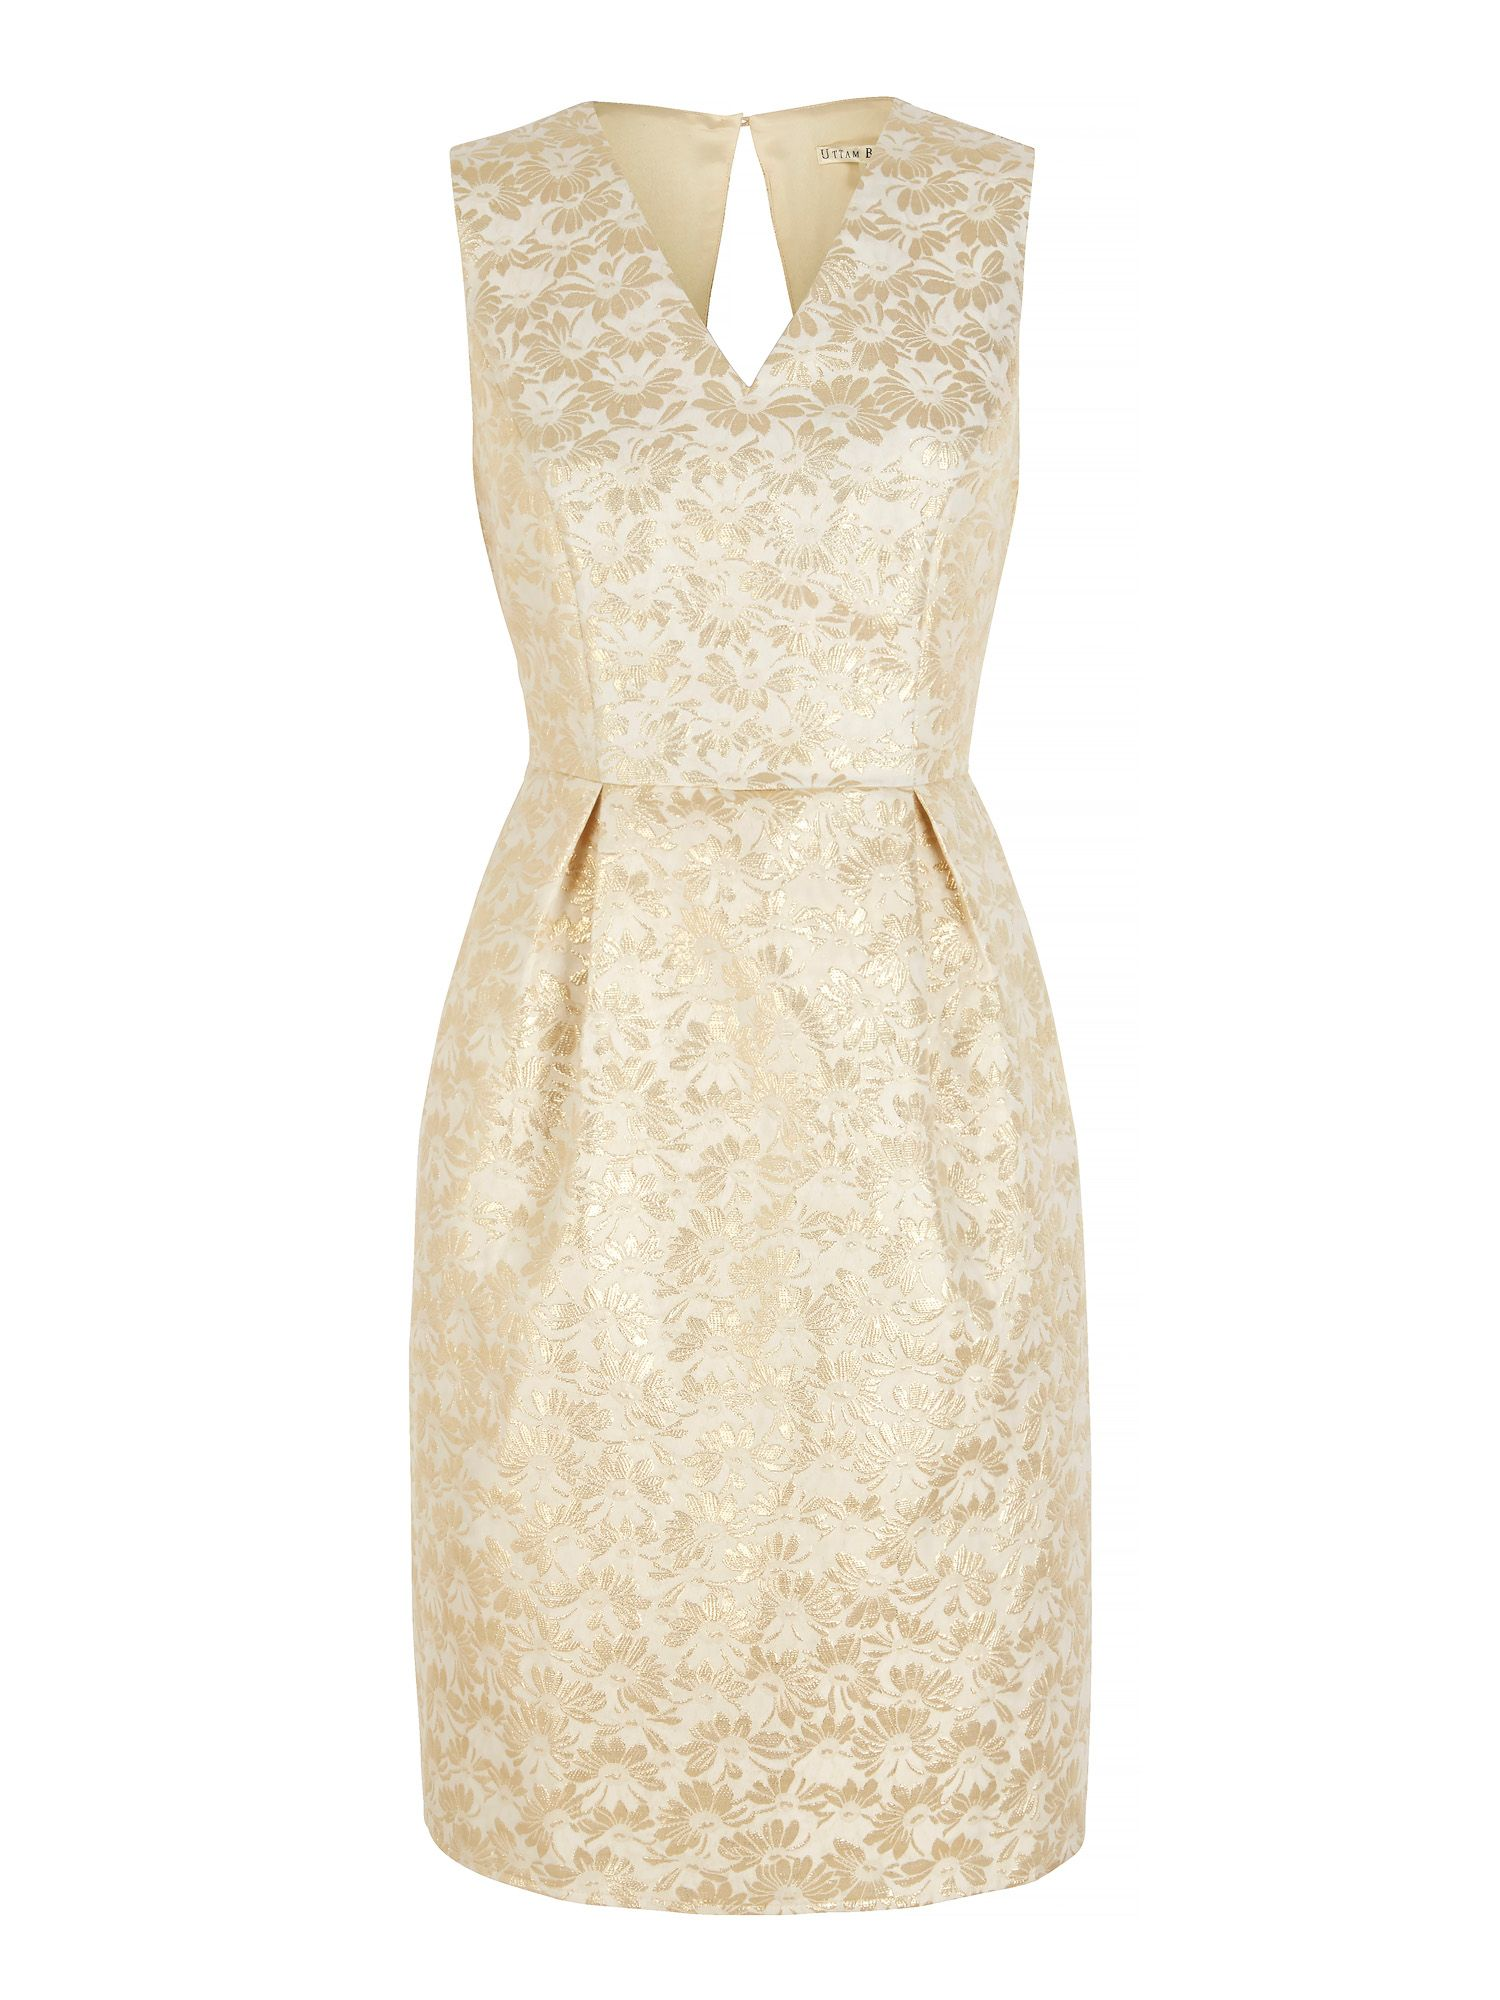 Uttam Boutique Gold Daisy Jacquard Party Dress Yellow